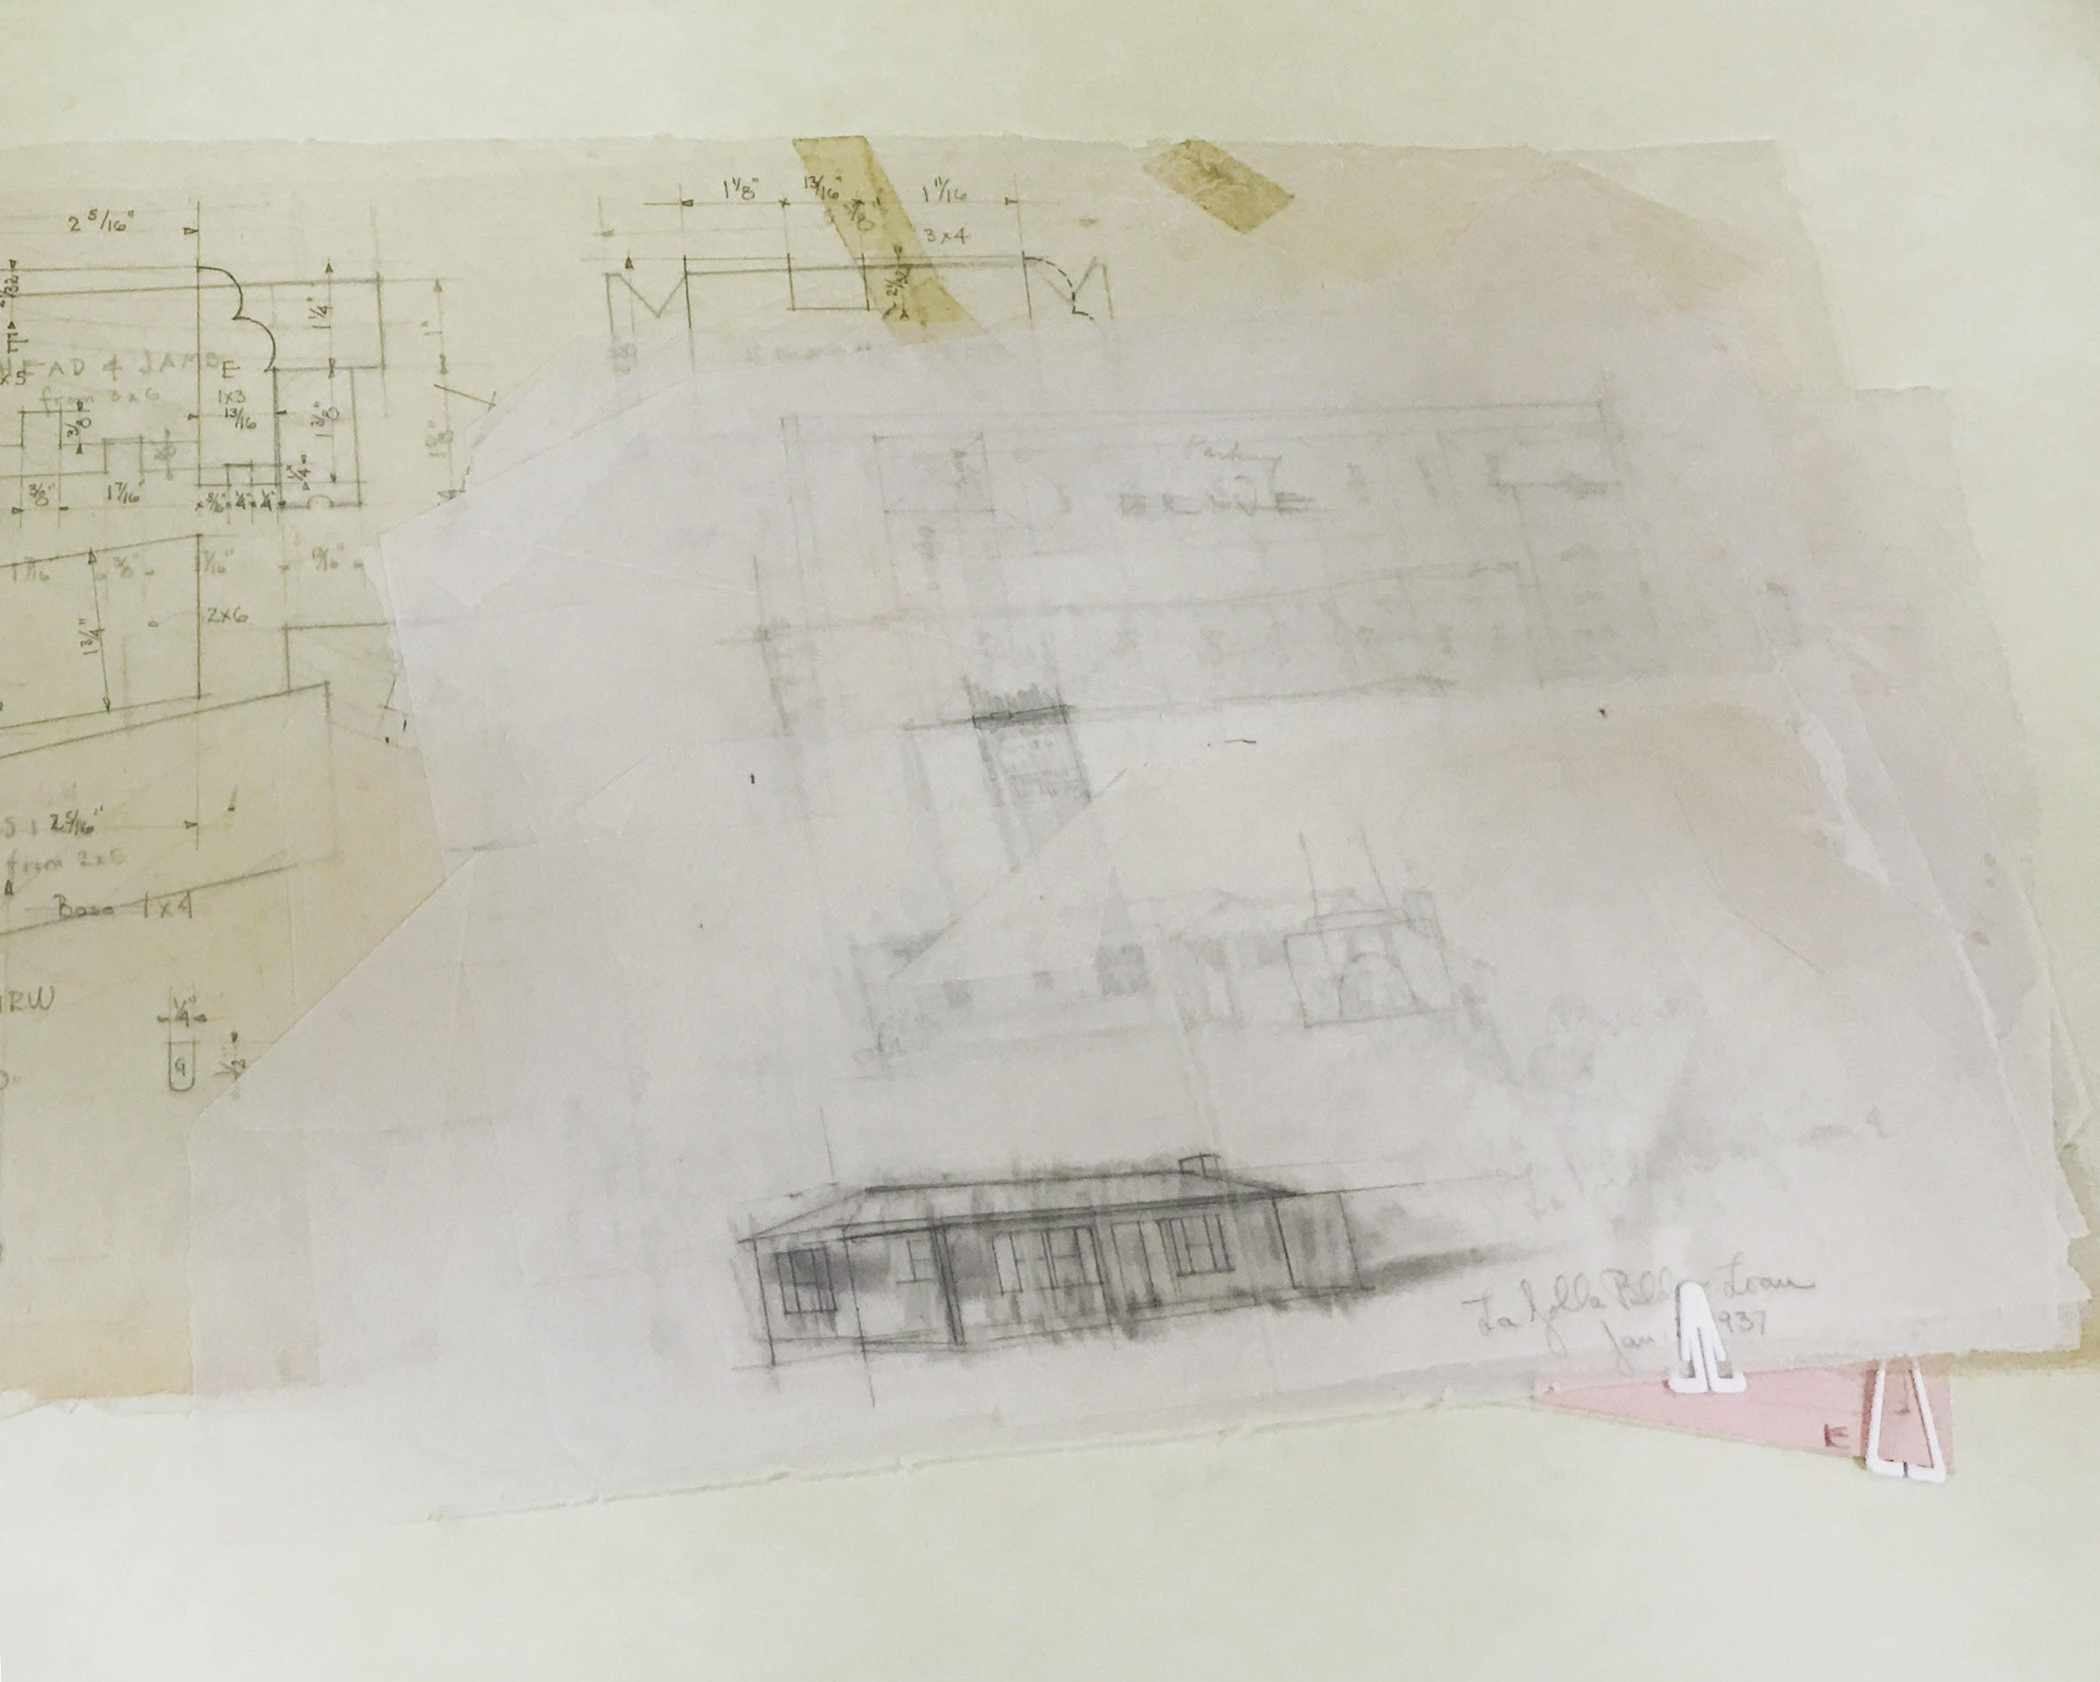 Architectural drawings and sketches in a folder